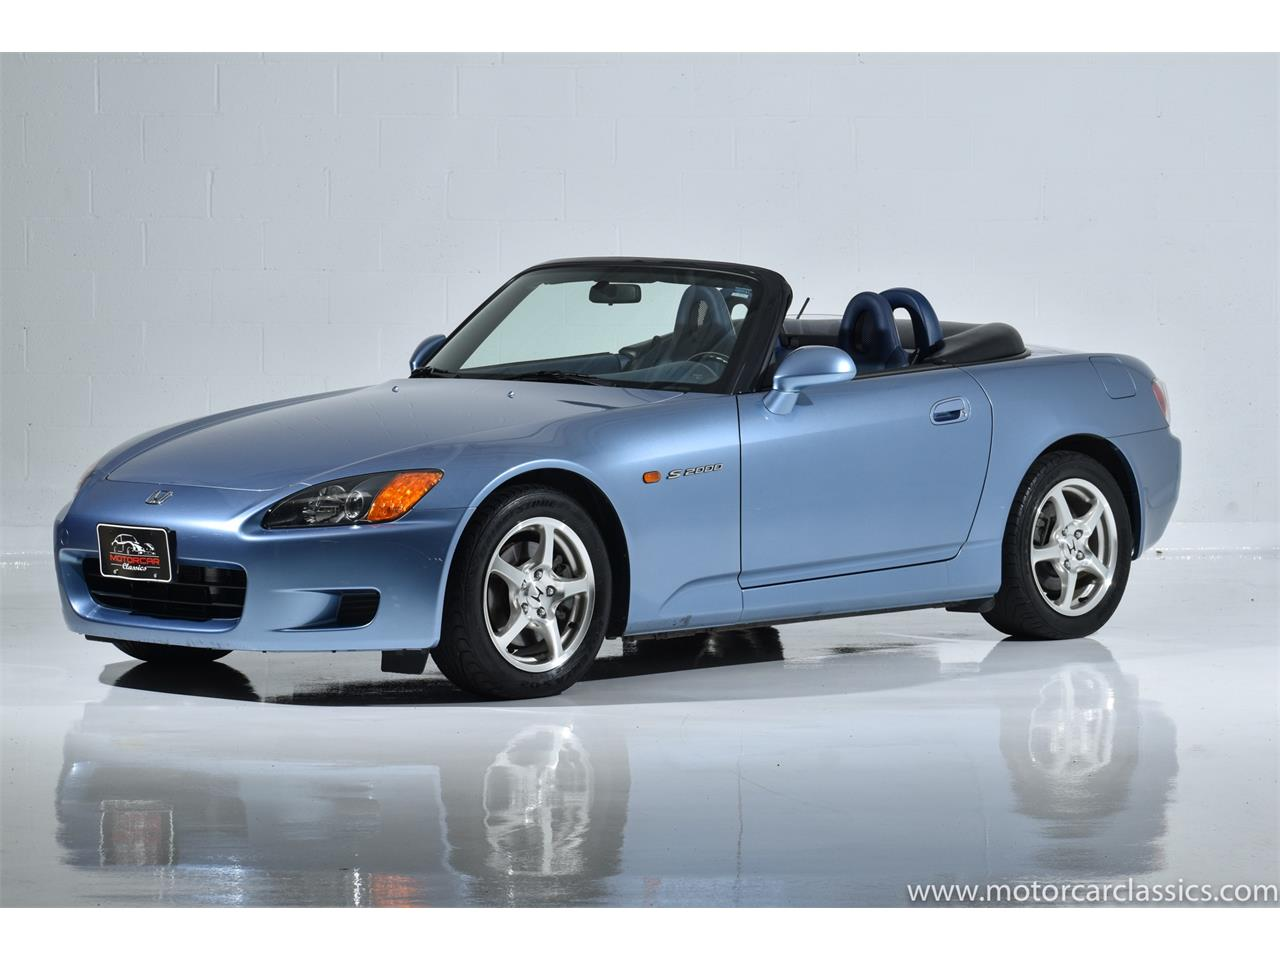 Large Picture of '02 Honda S2000 - $39,900.00 Offered by Motorcar Classics - QNSZ